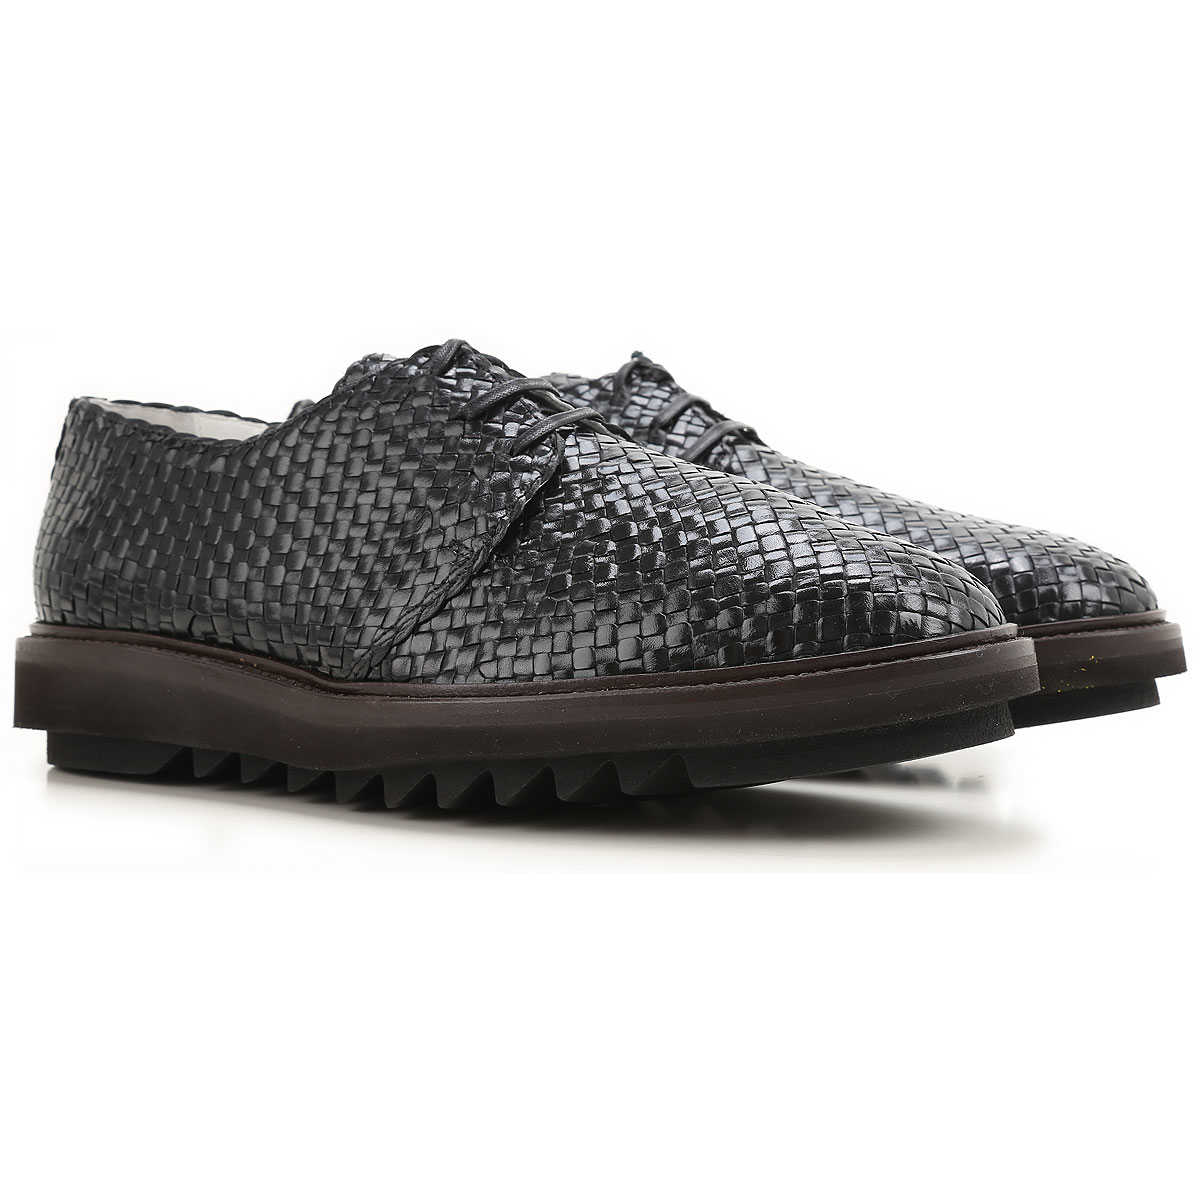 Dolce & Gabbana Lace Up Shoes for Men Oxfords Derbies and Brogues On Sale USA - GOOFASH